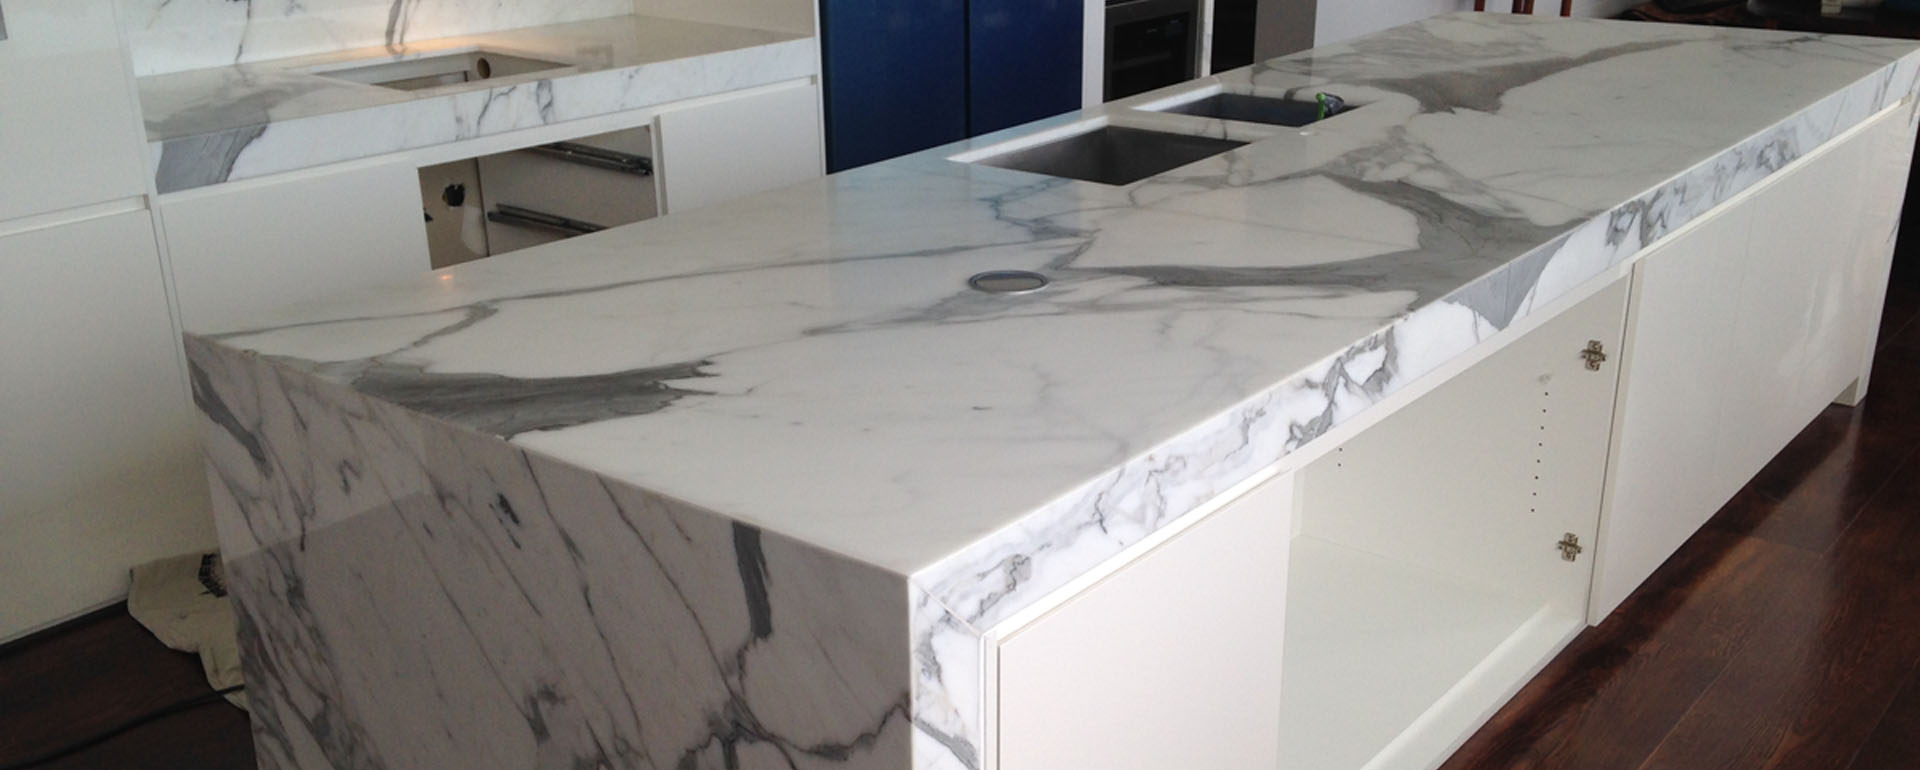 milan white marble installation melbourne benchtop top bench kitchen benctops projects suppliers